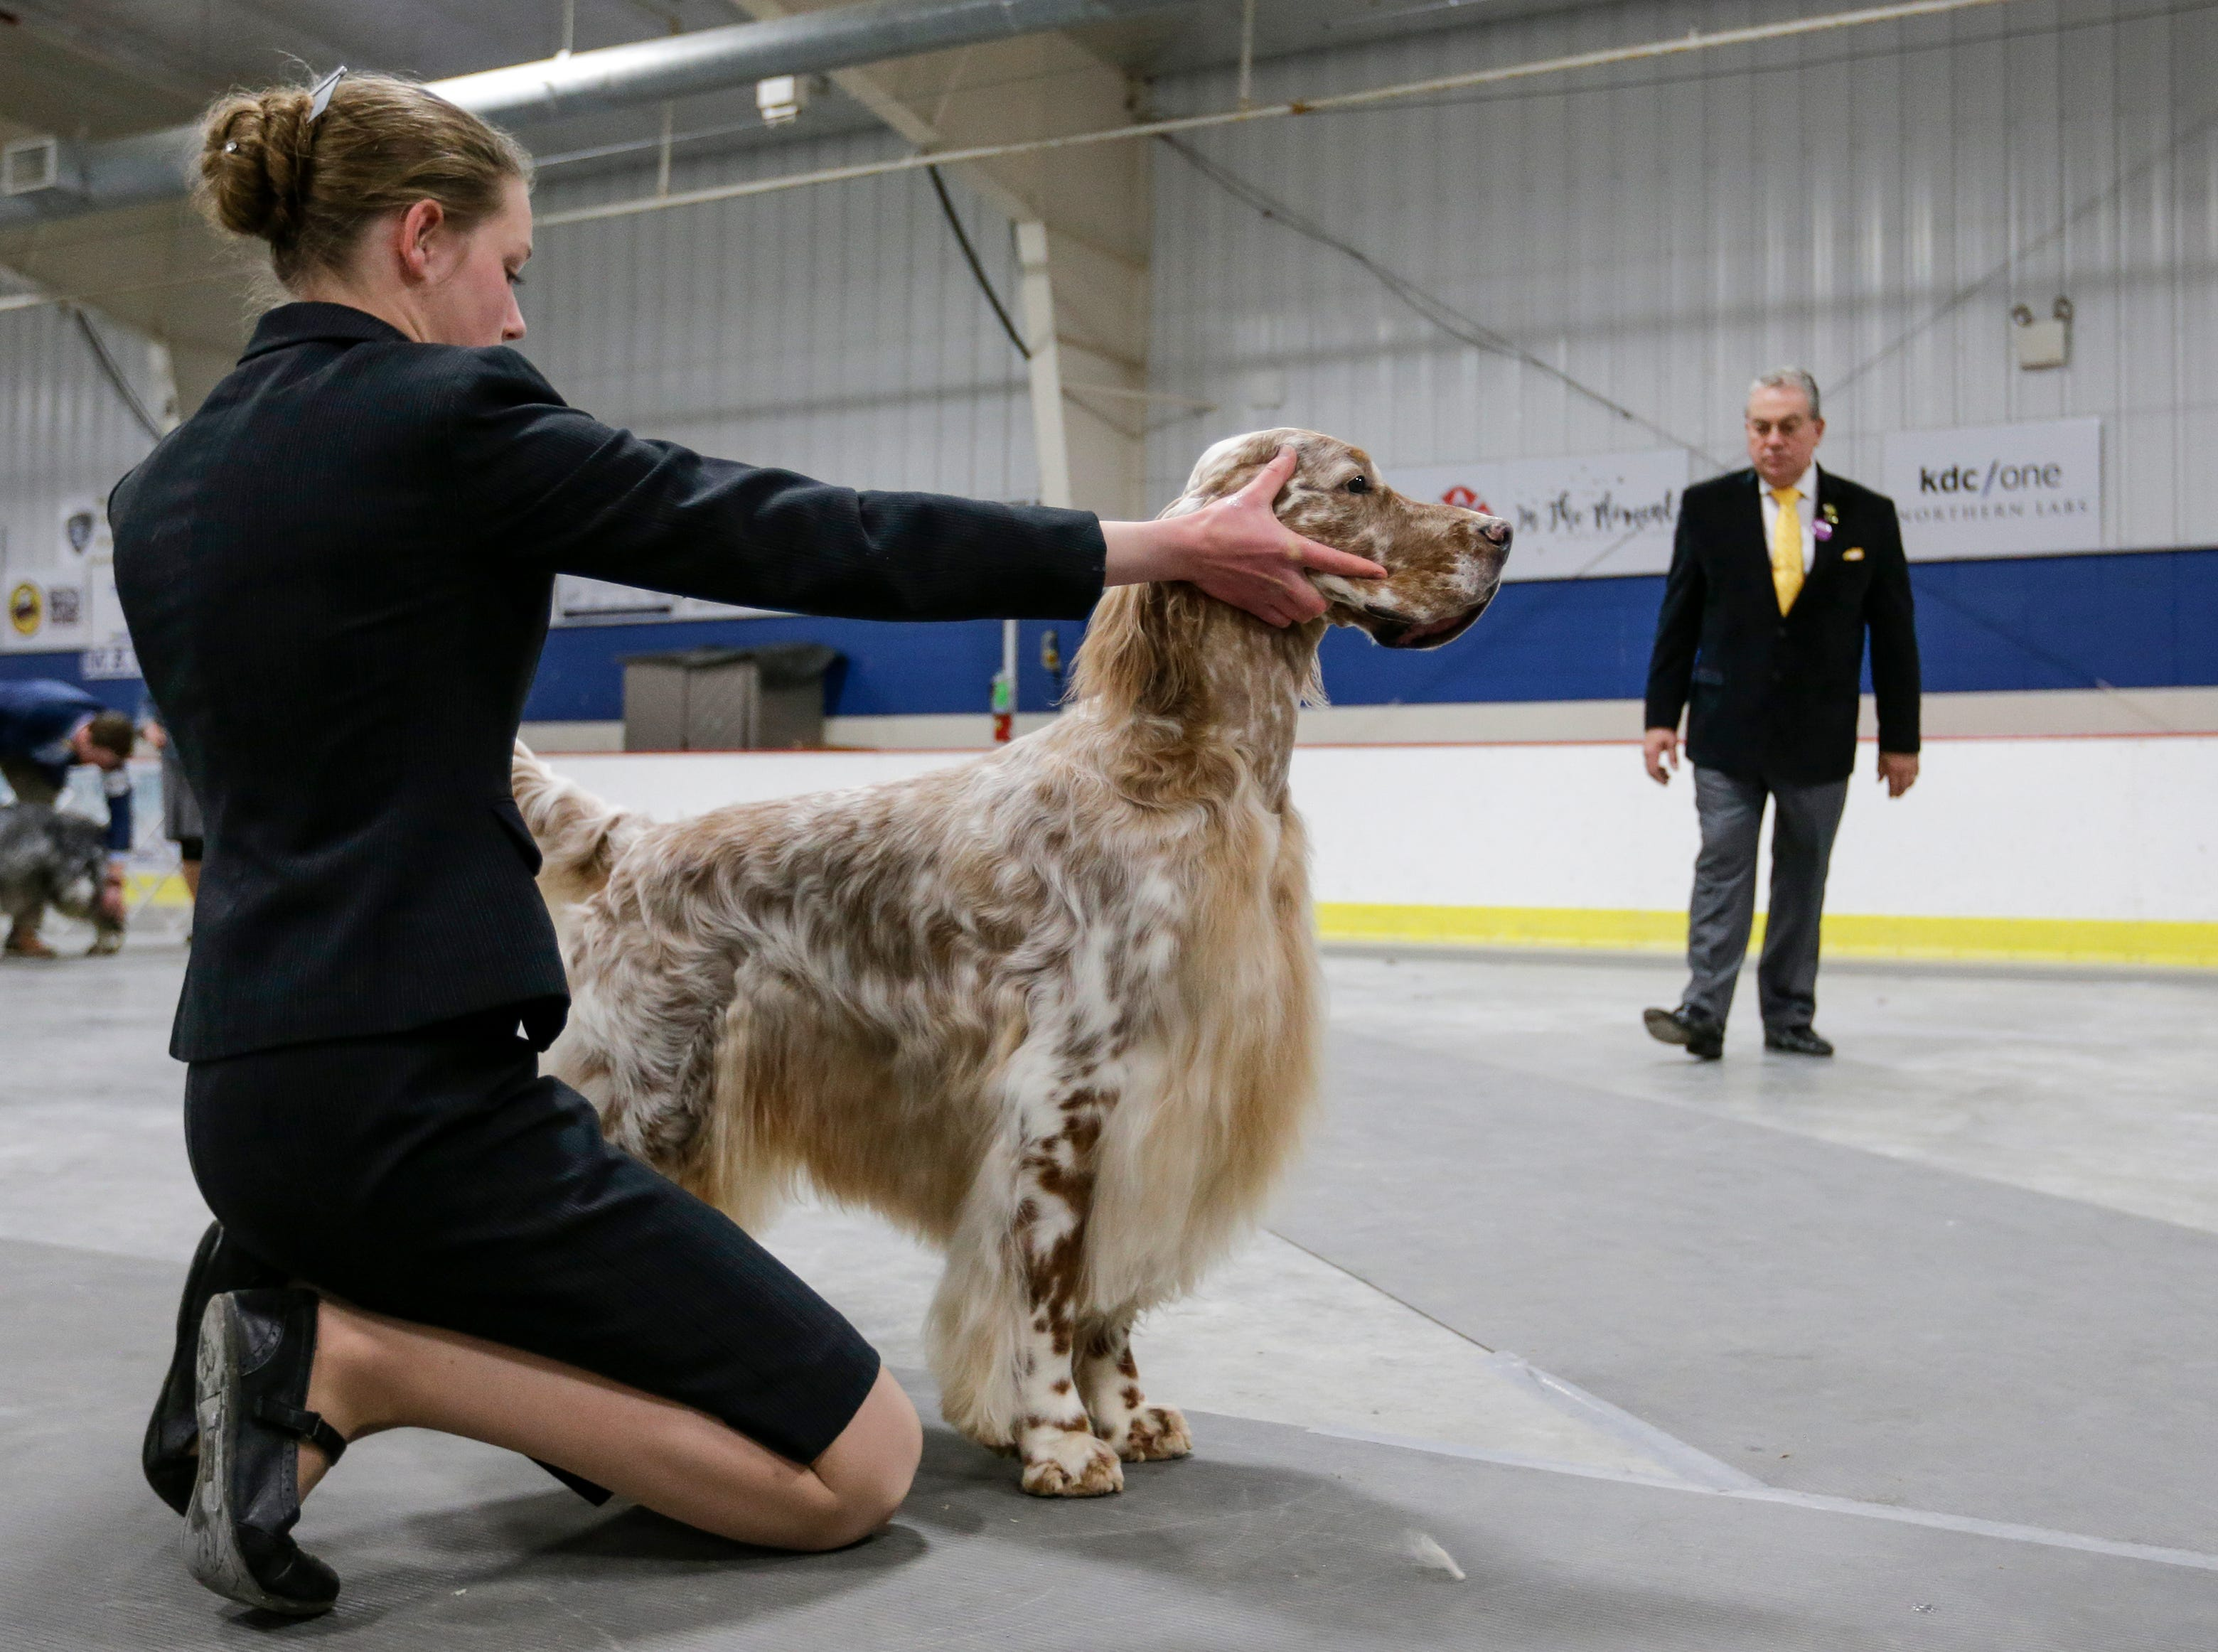 Abigail Anderson, of Bailey, Colo., shows her English setter Austin to Judge Christopher T. Moore during the Northeast Wisconsin Dog Show Classic at the Manitowoc County Expo Center Thursday, March 28, 2019, in Manitowoc, Wis. Joshua Clark/USA TODAY NETWORK-Wisconsin